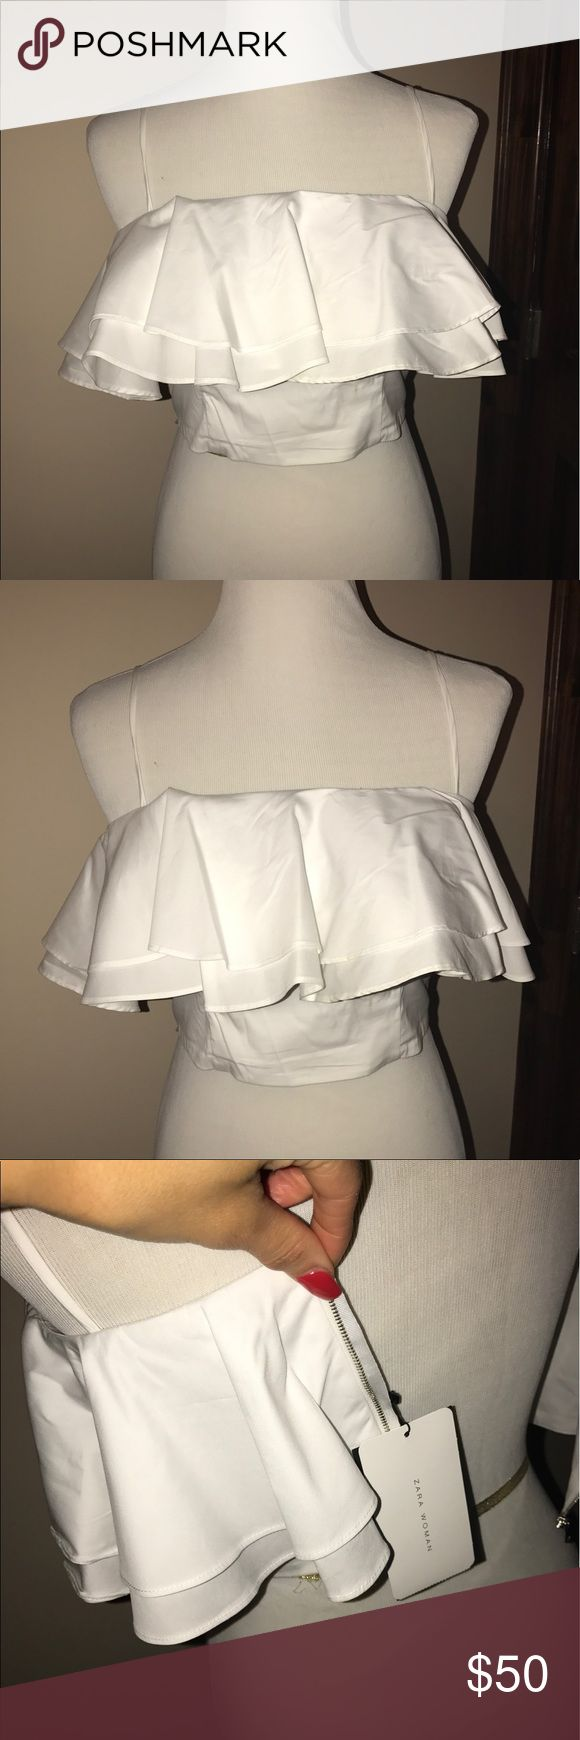 NWT Zara Crop Top with Double Ruffle Detail Size small.  New with tags.  Spaghetti straps.  Zip back.  Double Ruffle overlay. Zara Tops Crop Tops